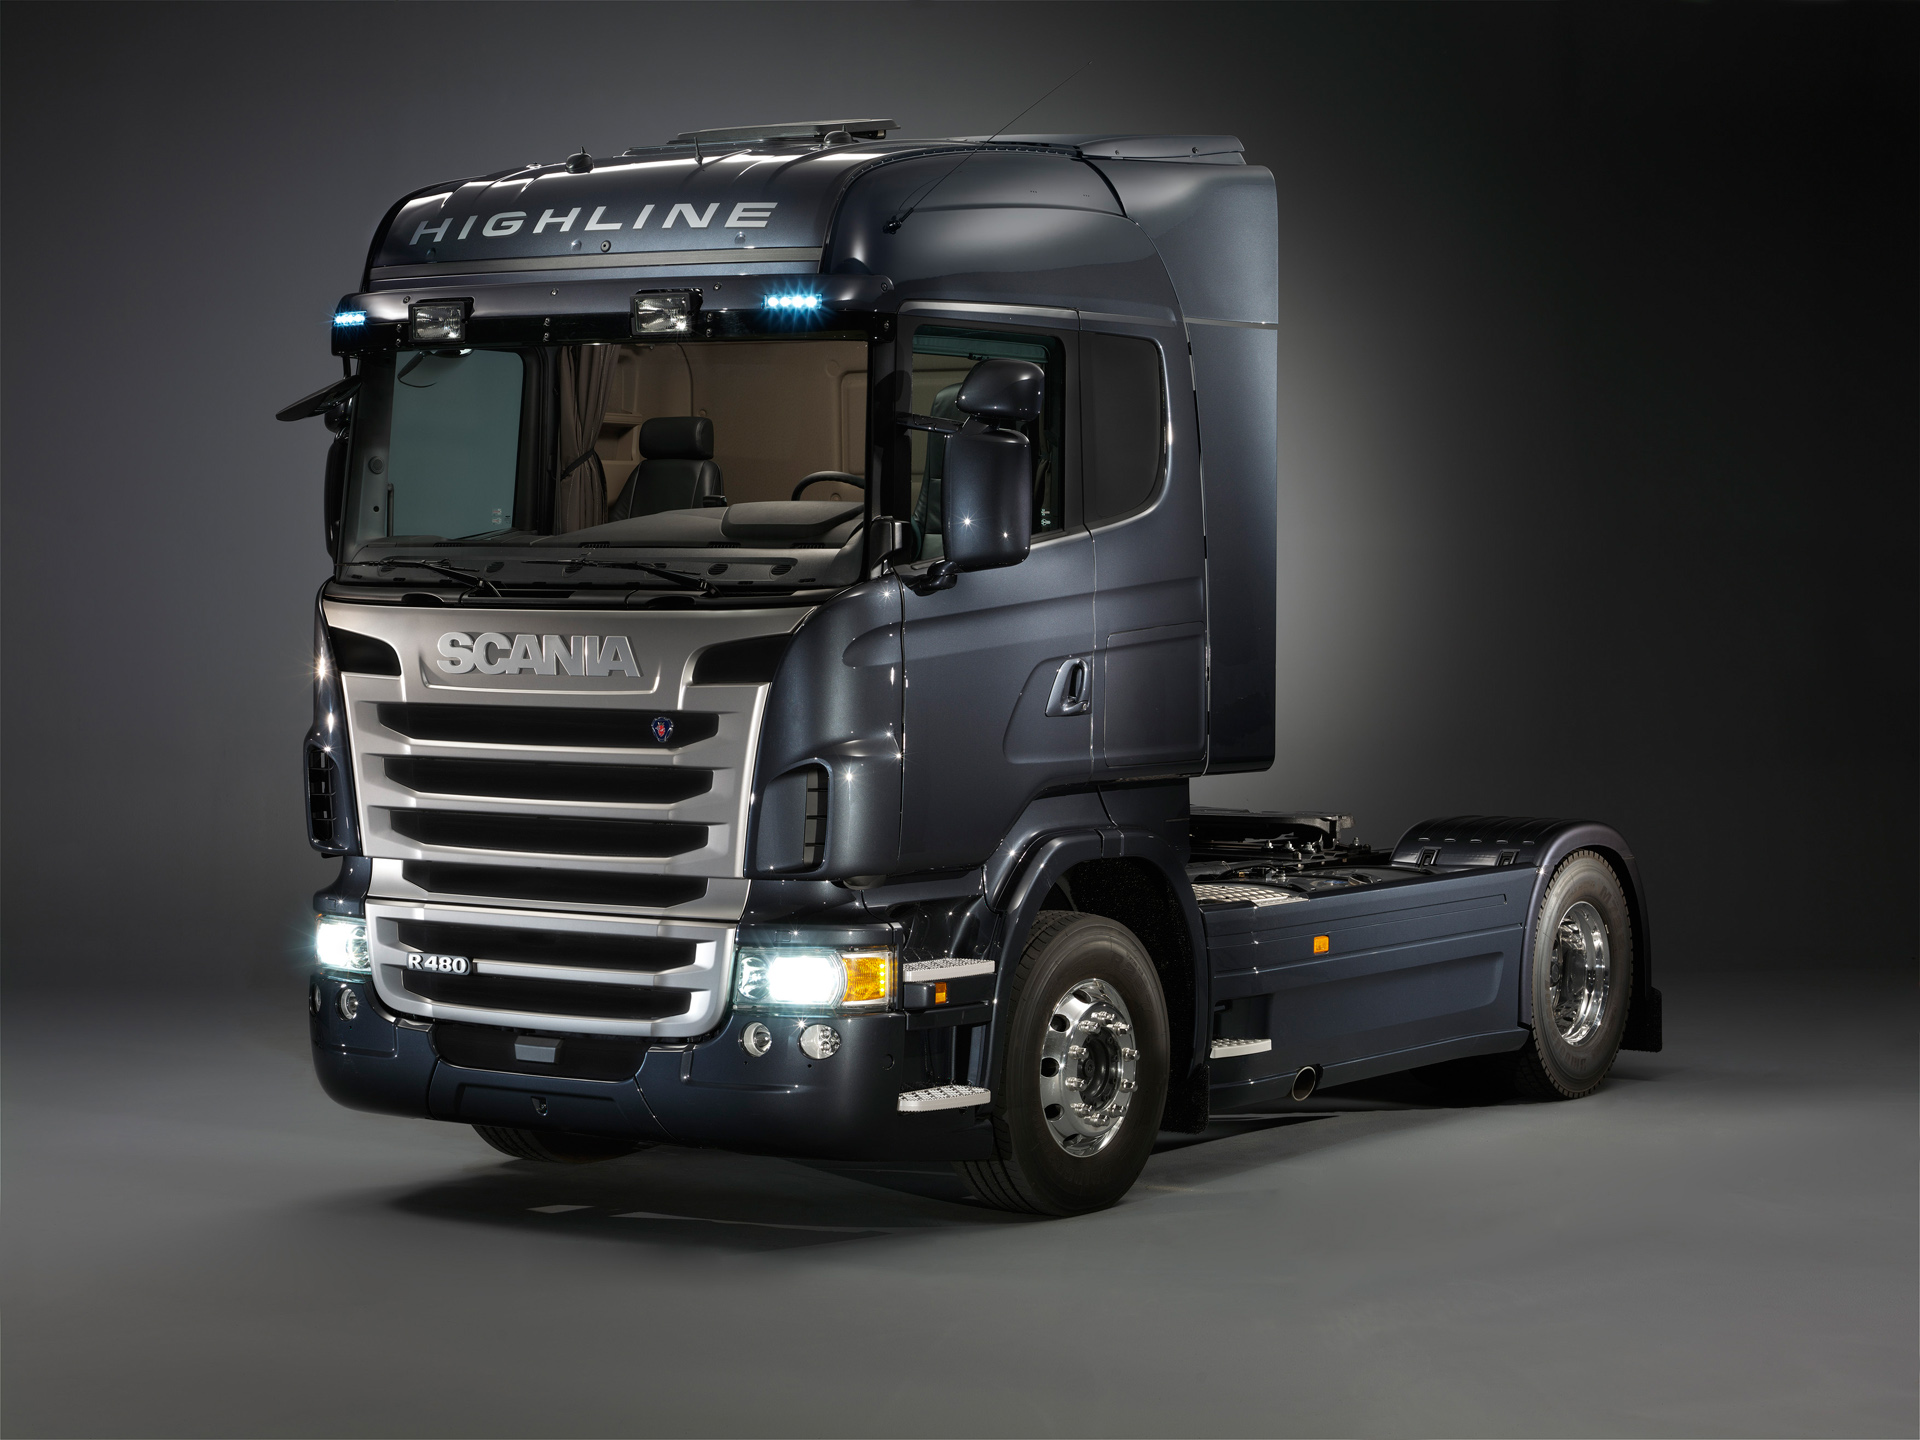 scania r series picture 69015 scania photo gallery. Black Bedroom Furniture Sets. Home Design Ideas